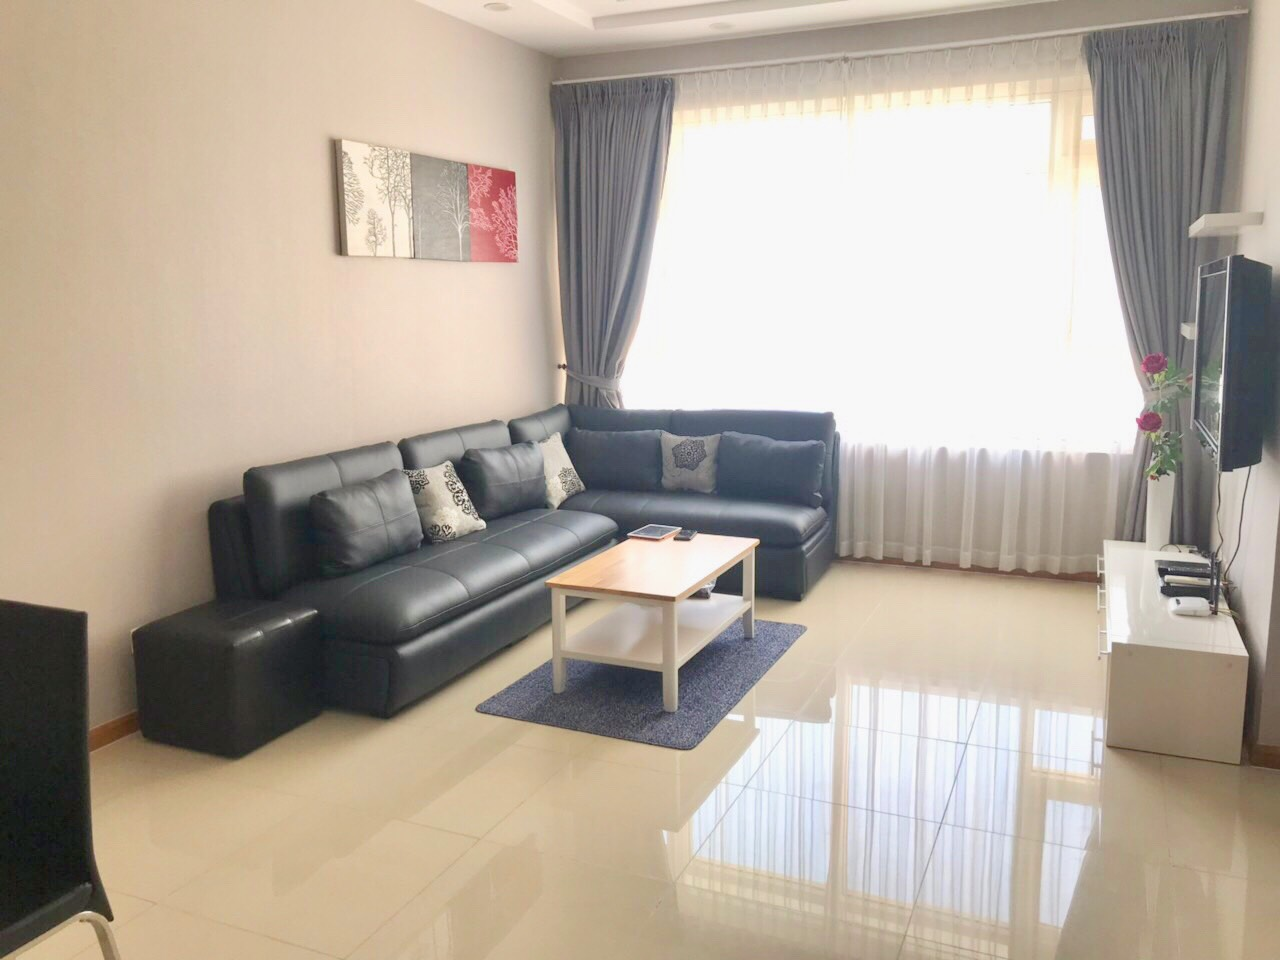 Apartment for rent  BT1011486 (10)